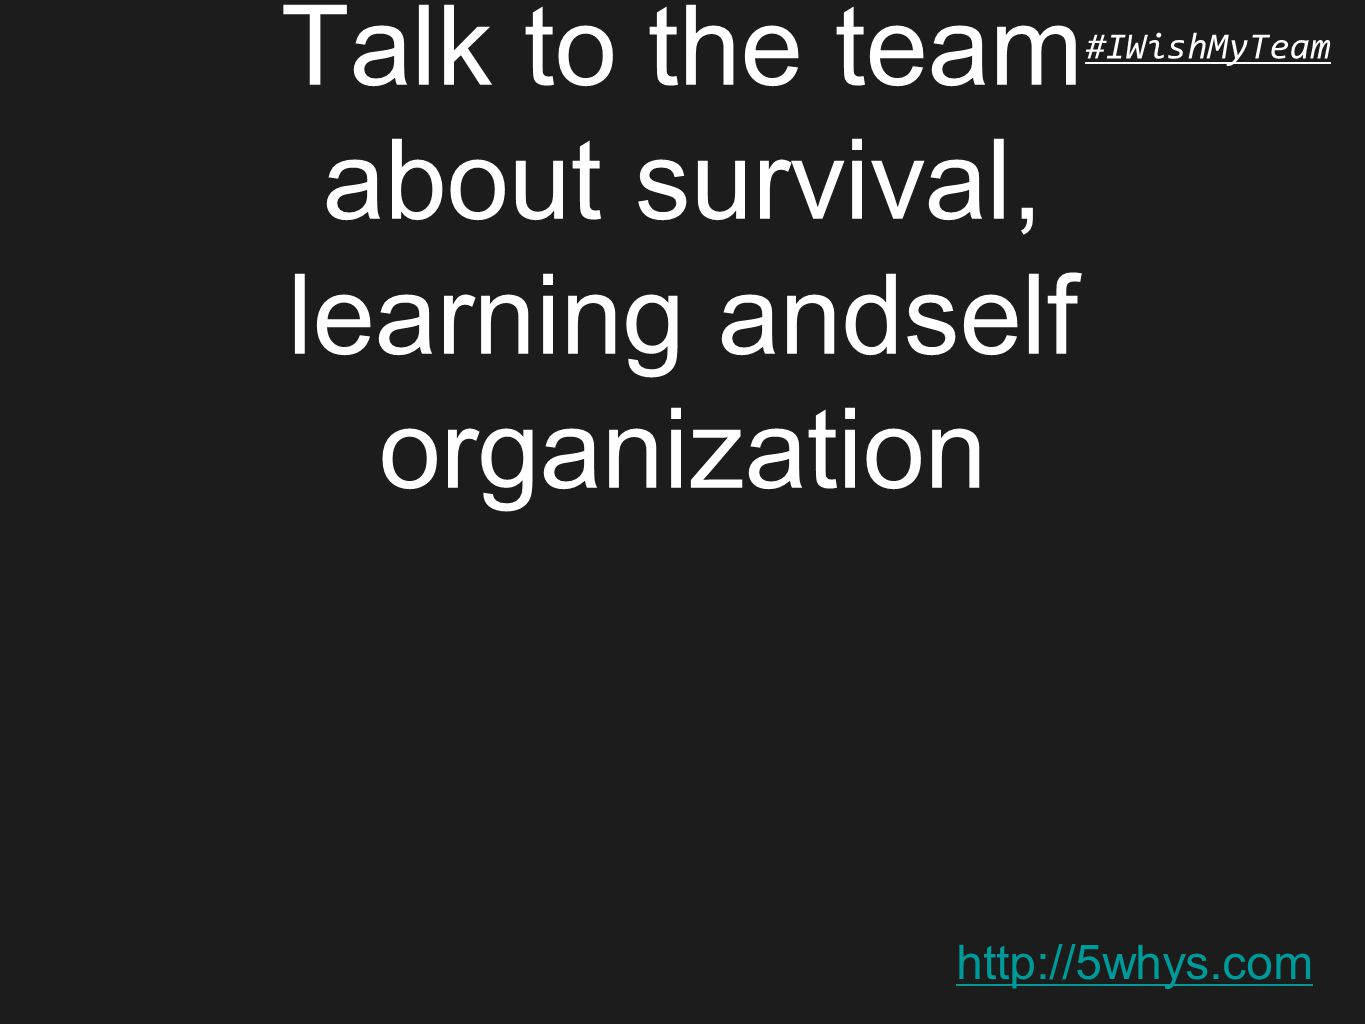 http://5whys.com #IWishMyTeam Talk to the team about survival, learning andself organization